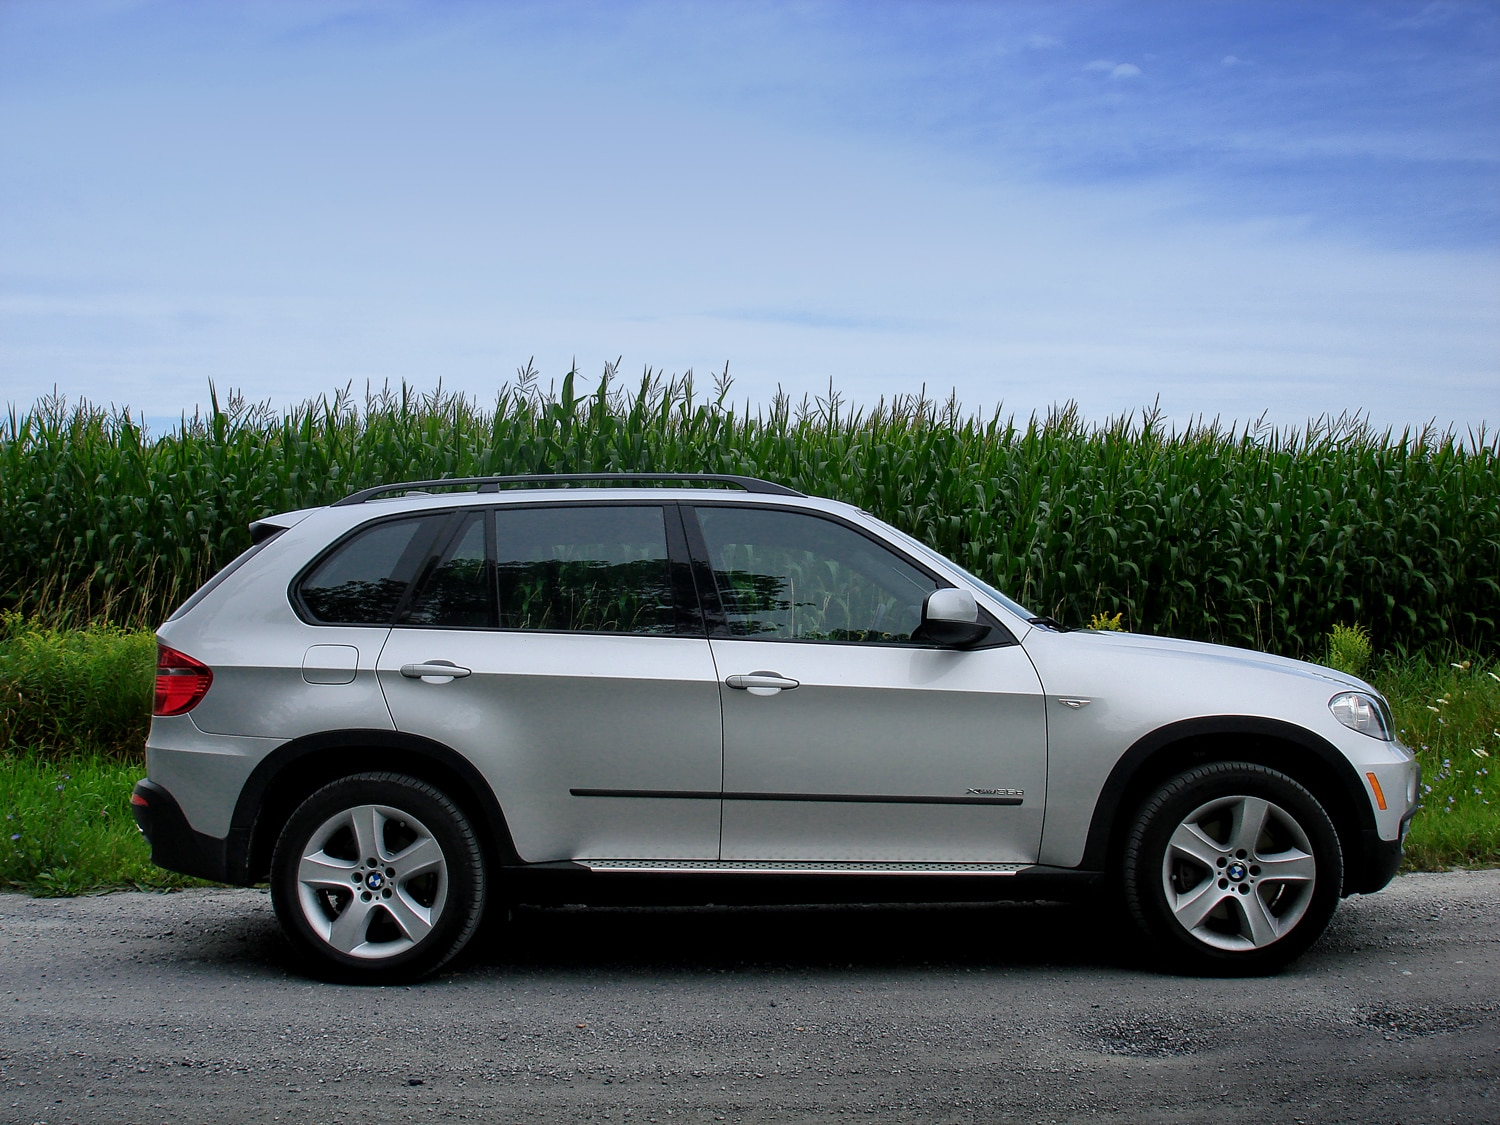 Bmw Recalling Diesel Powered X5 For Fuel Heater Issue Filter Erick Ayapana